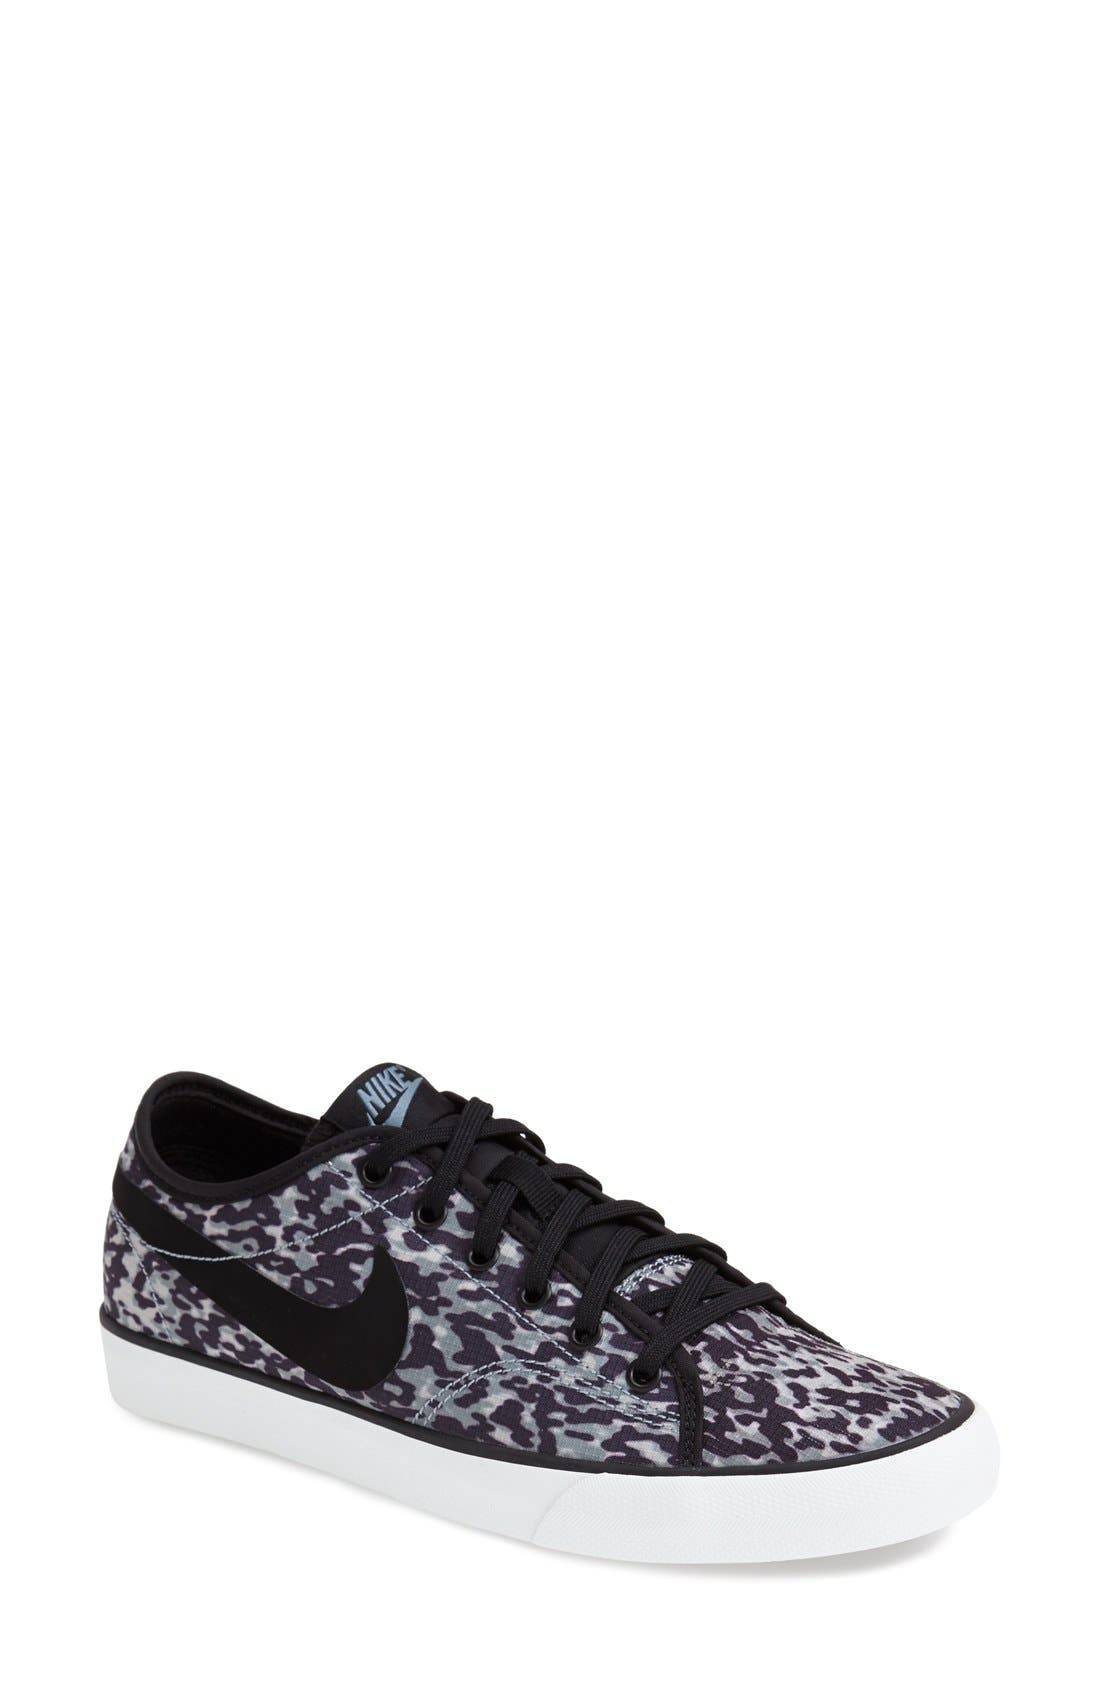 Main Image - Nike 'Primo - Court' Printed Canvas Sneaker (Women)